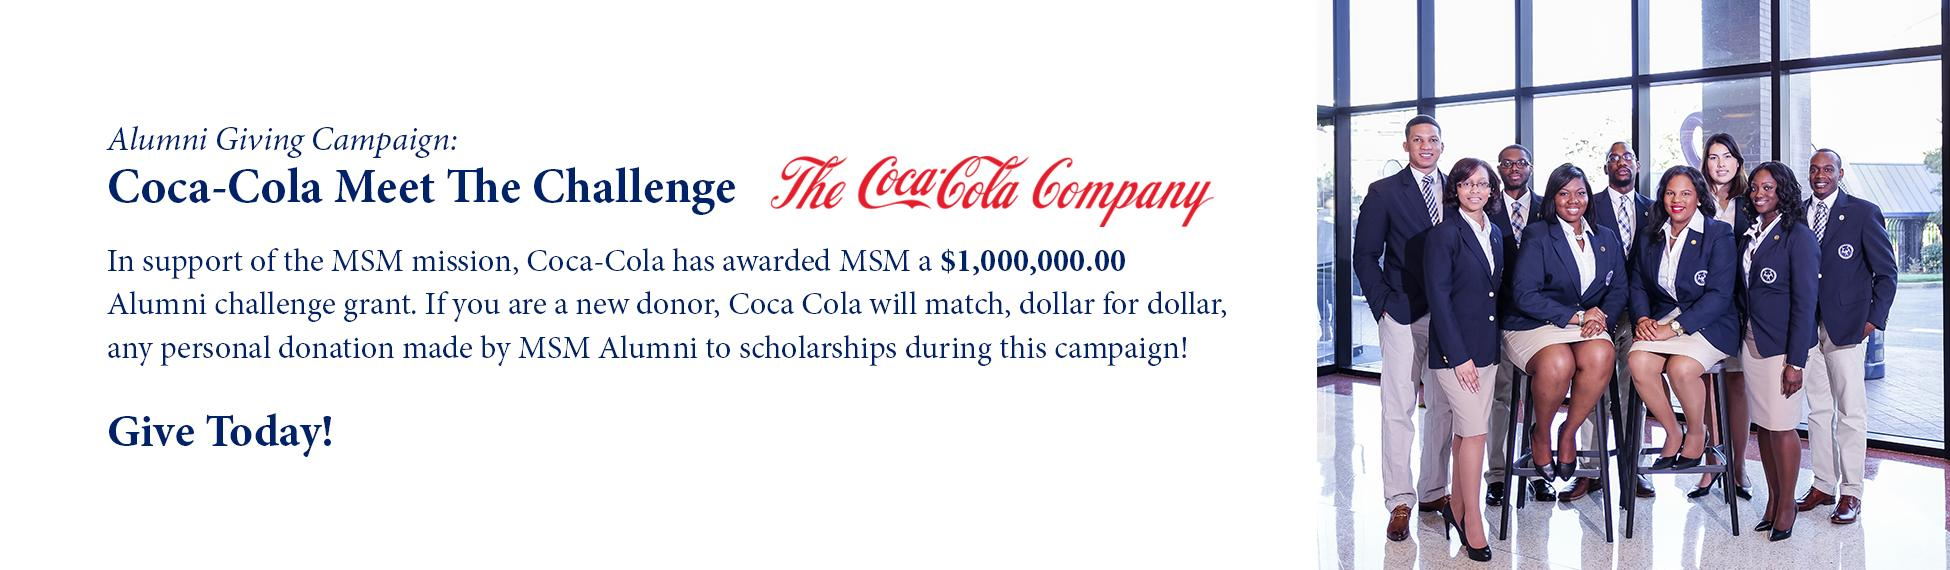 MSM and the Coca-Cola Meet The Challenge Campaign